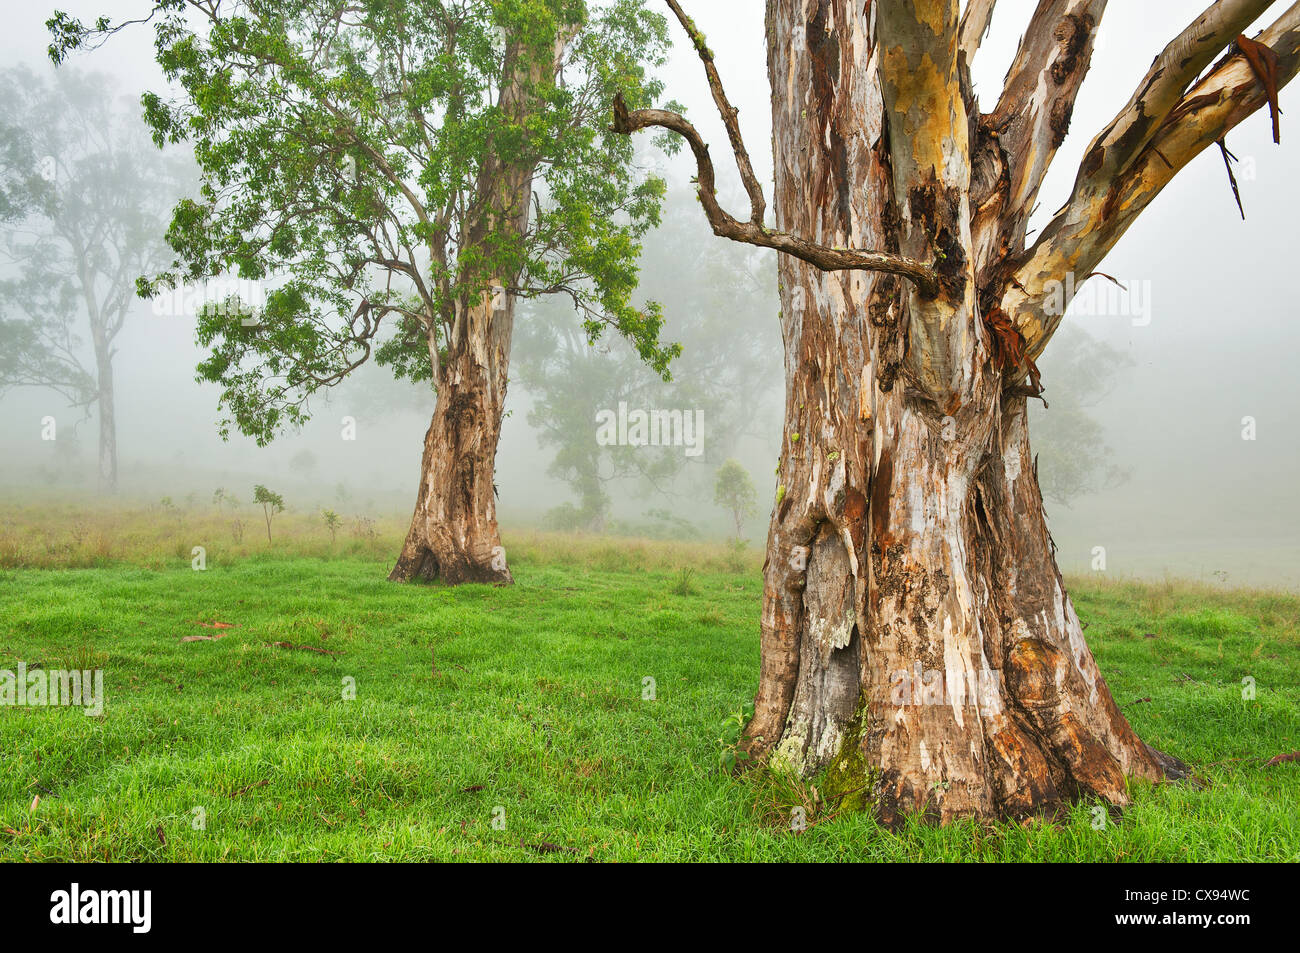 Eucalypt trees in morning mist. Stock Photo